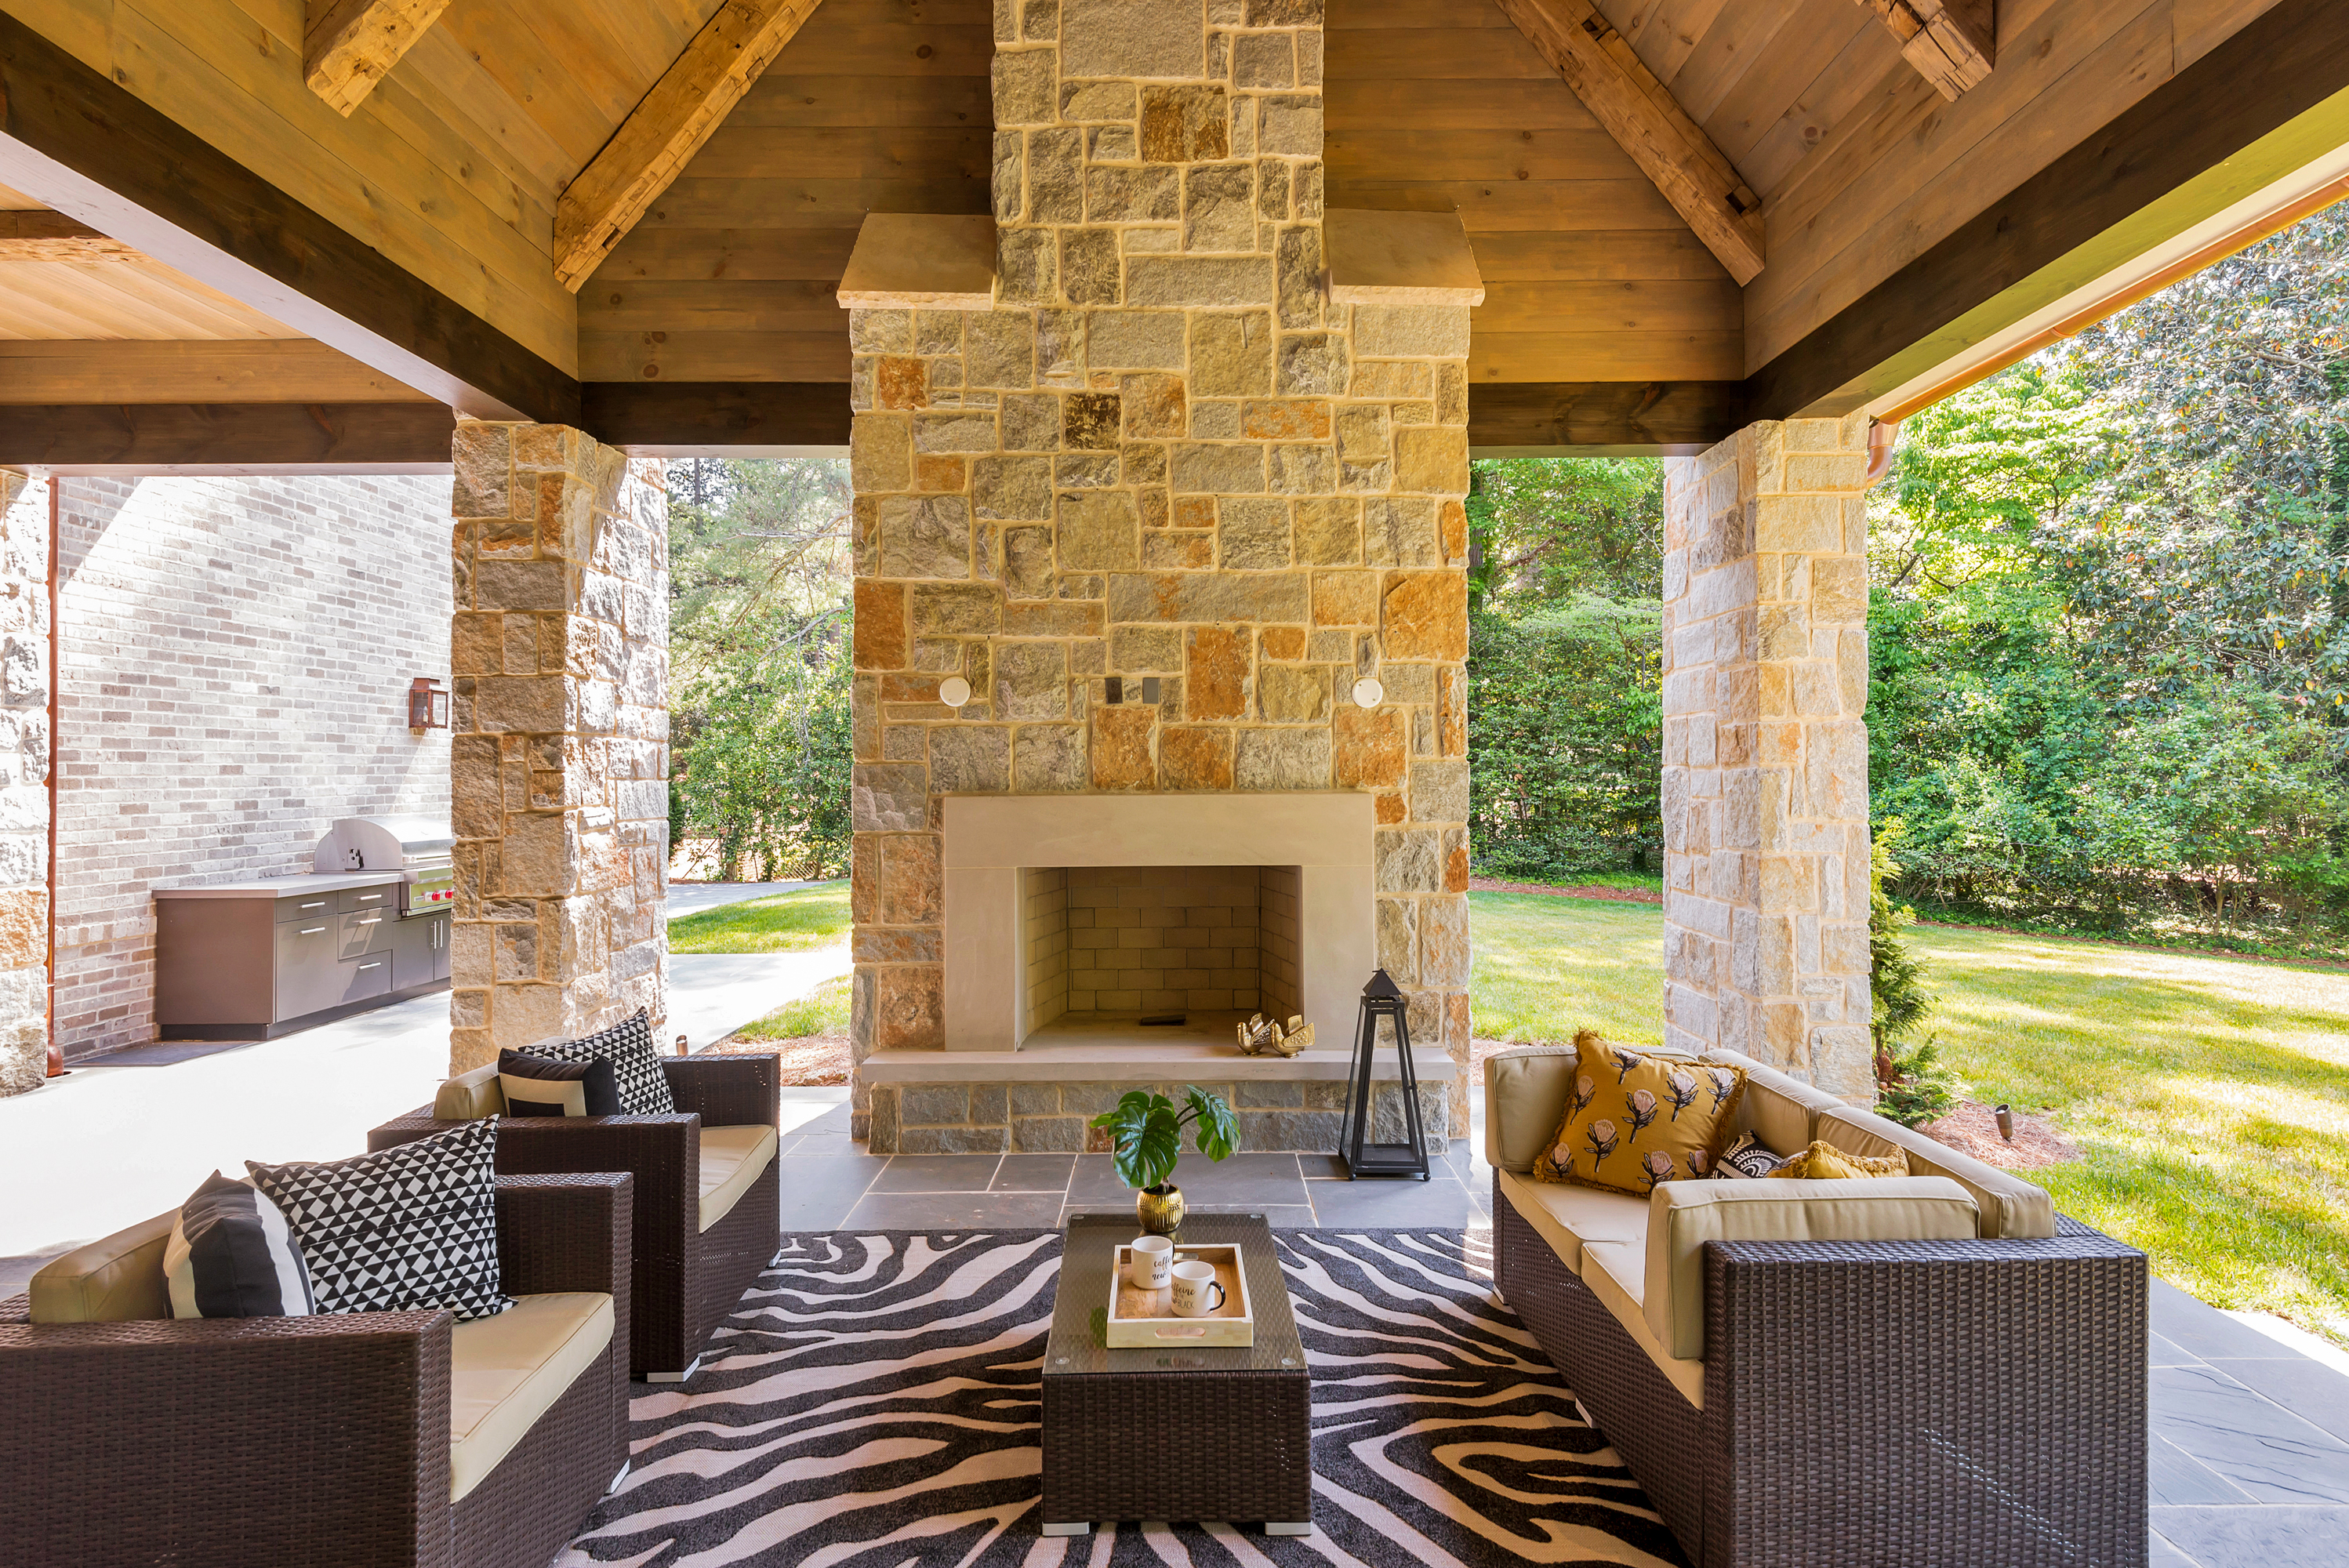 Outdoor Living Spaces Designed for Comfort | Design2Sell ... on Small Backyard Living Spaces  id=17001